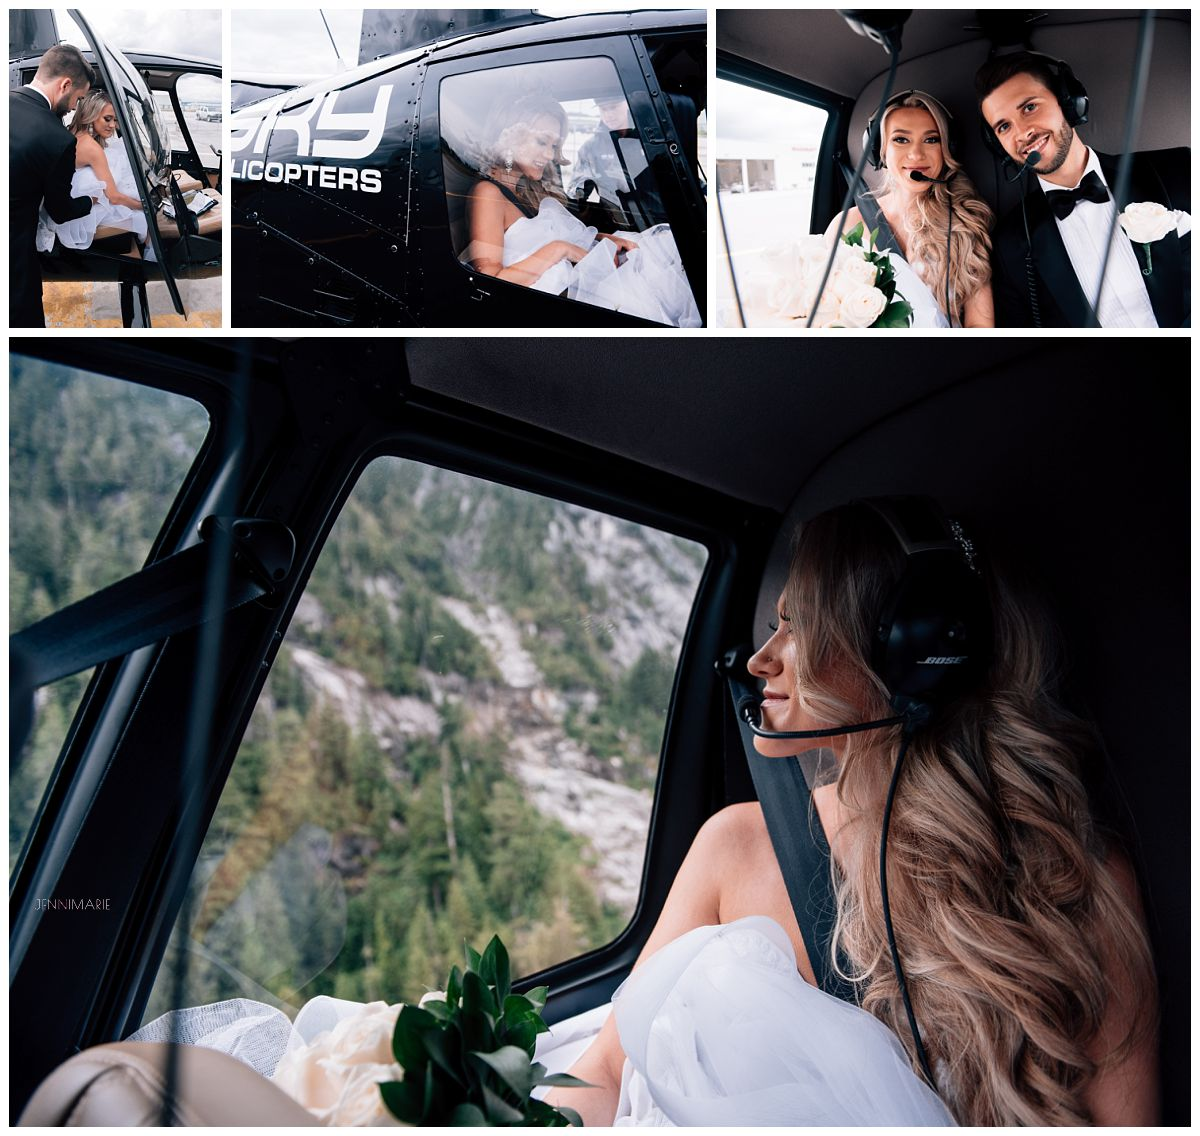 Sky Helicopter wedding portraits